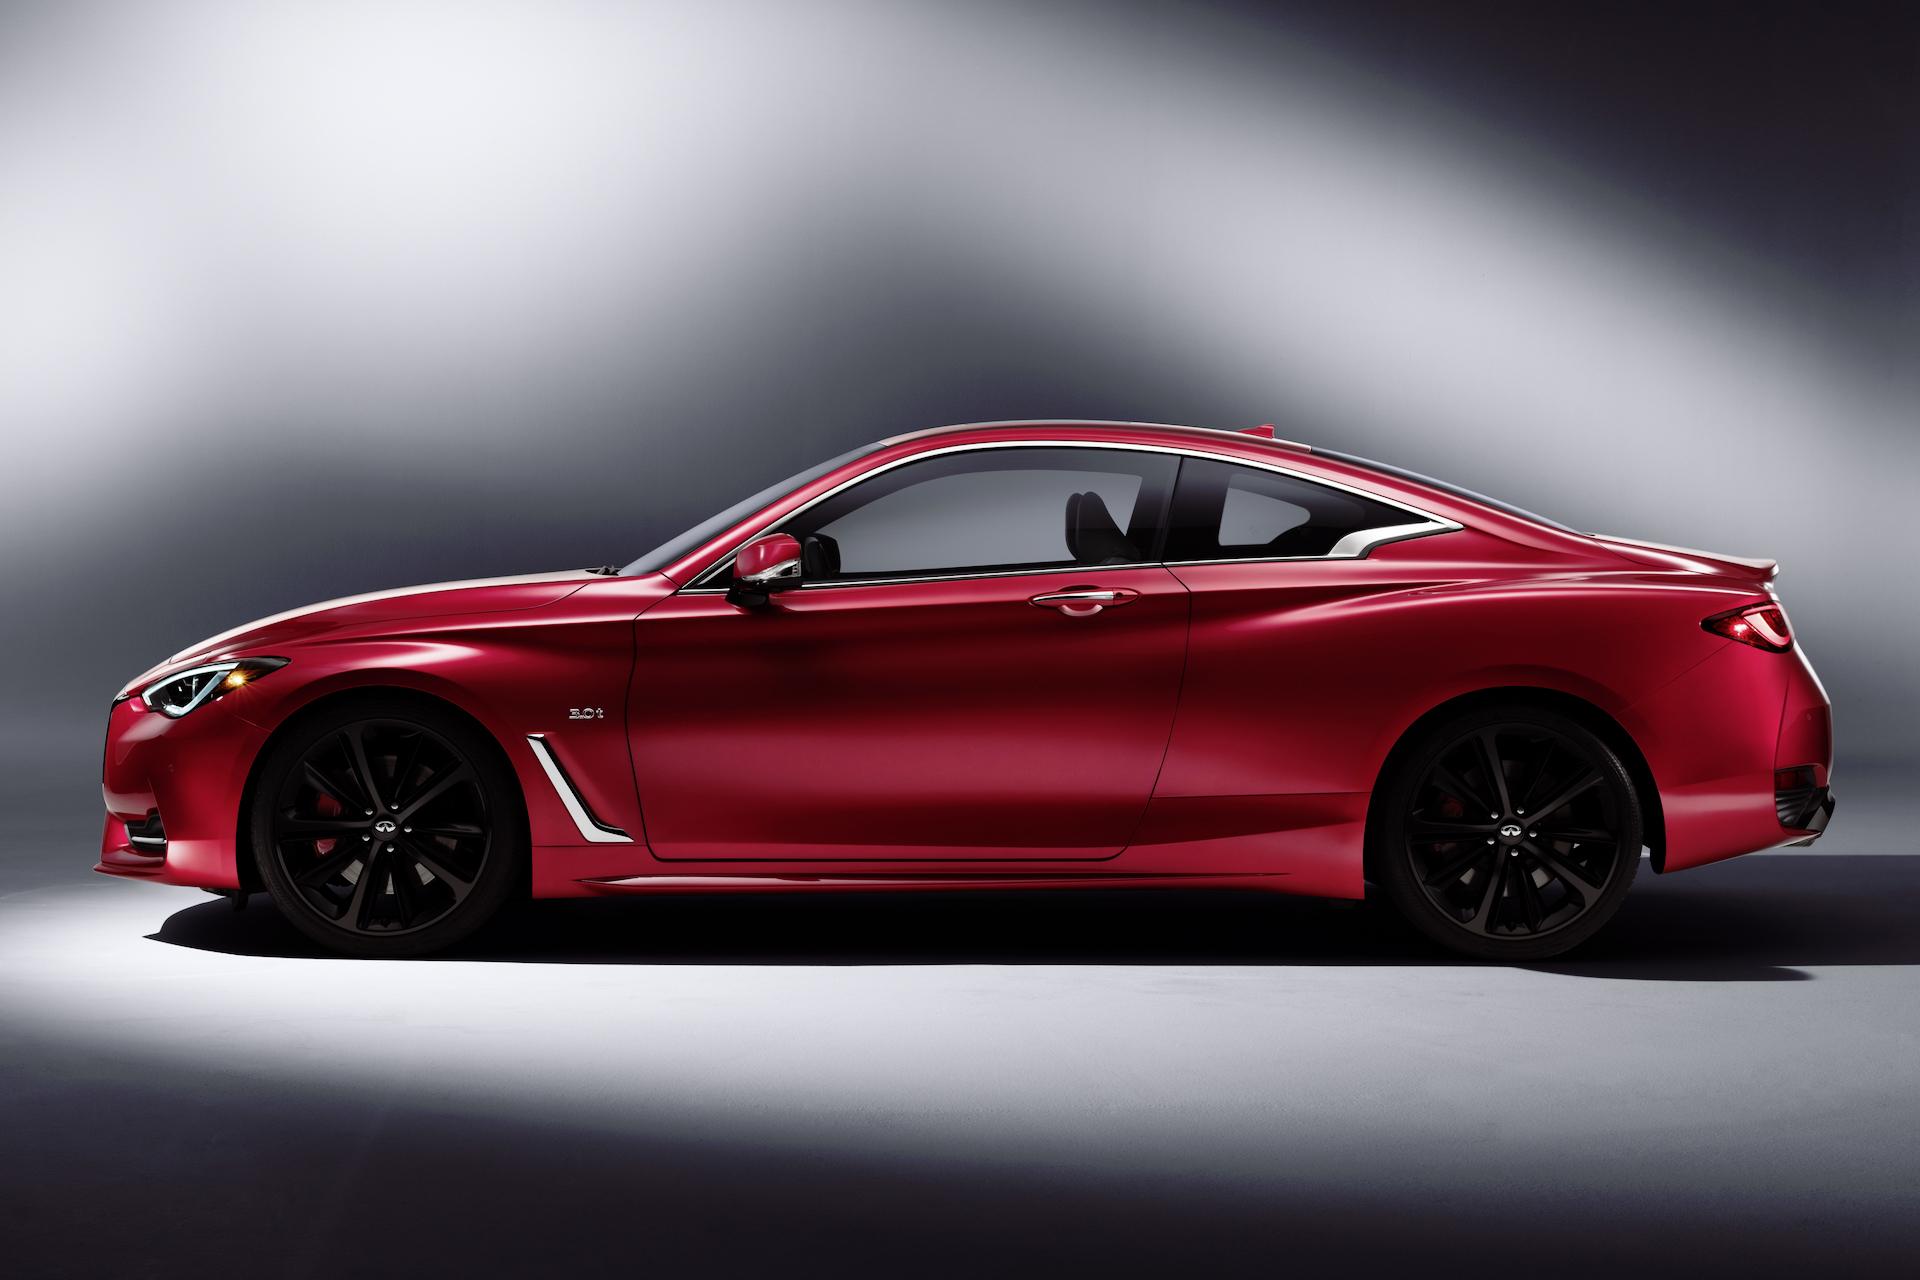 40 The Best 2020 Infiniti Q60 Coupe Convertible Redesign and Review